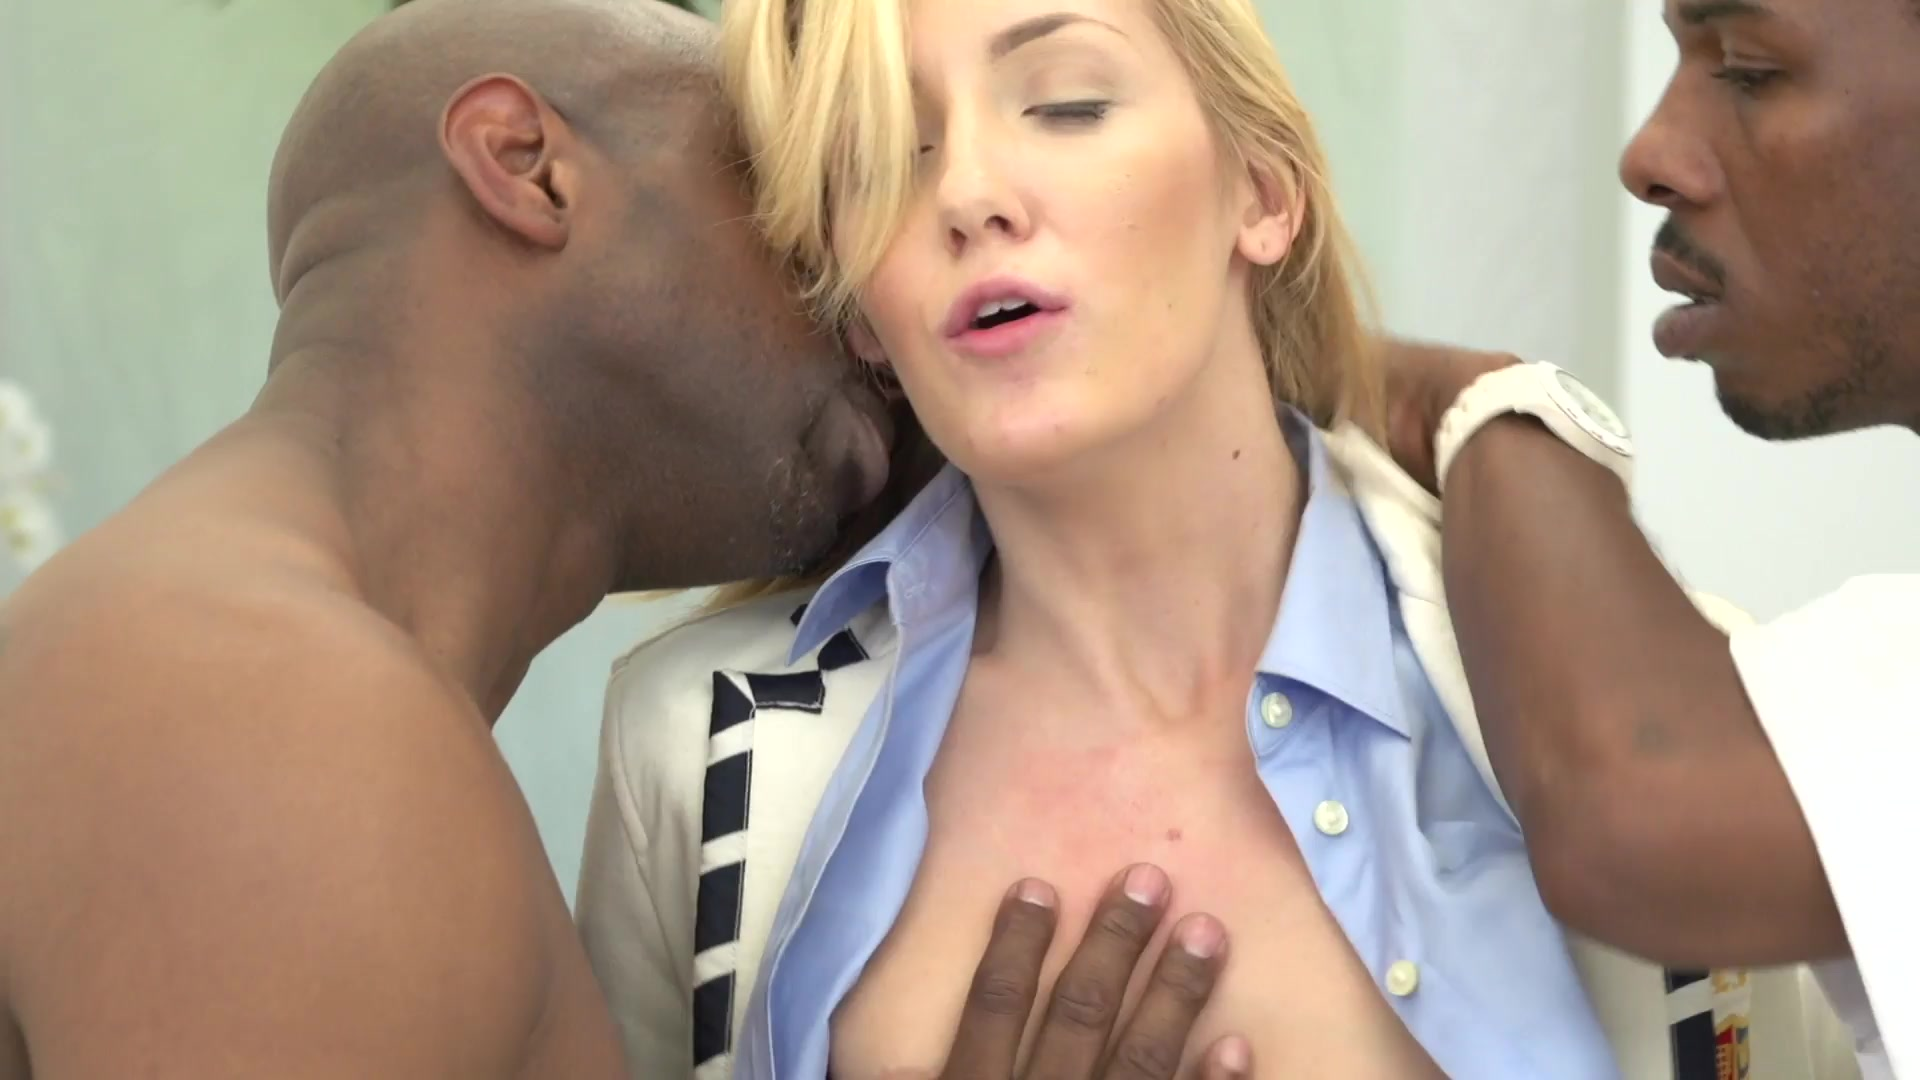 Disagree interracial porn trailer promo hot